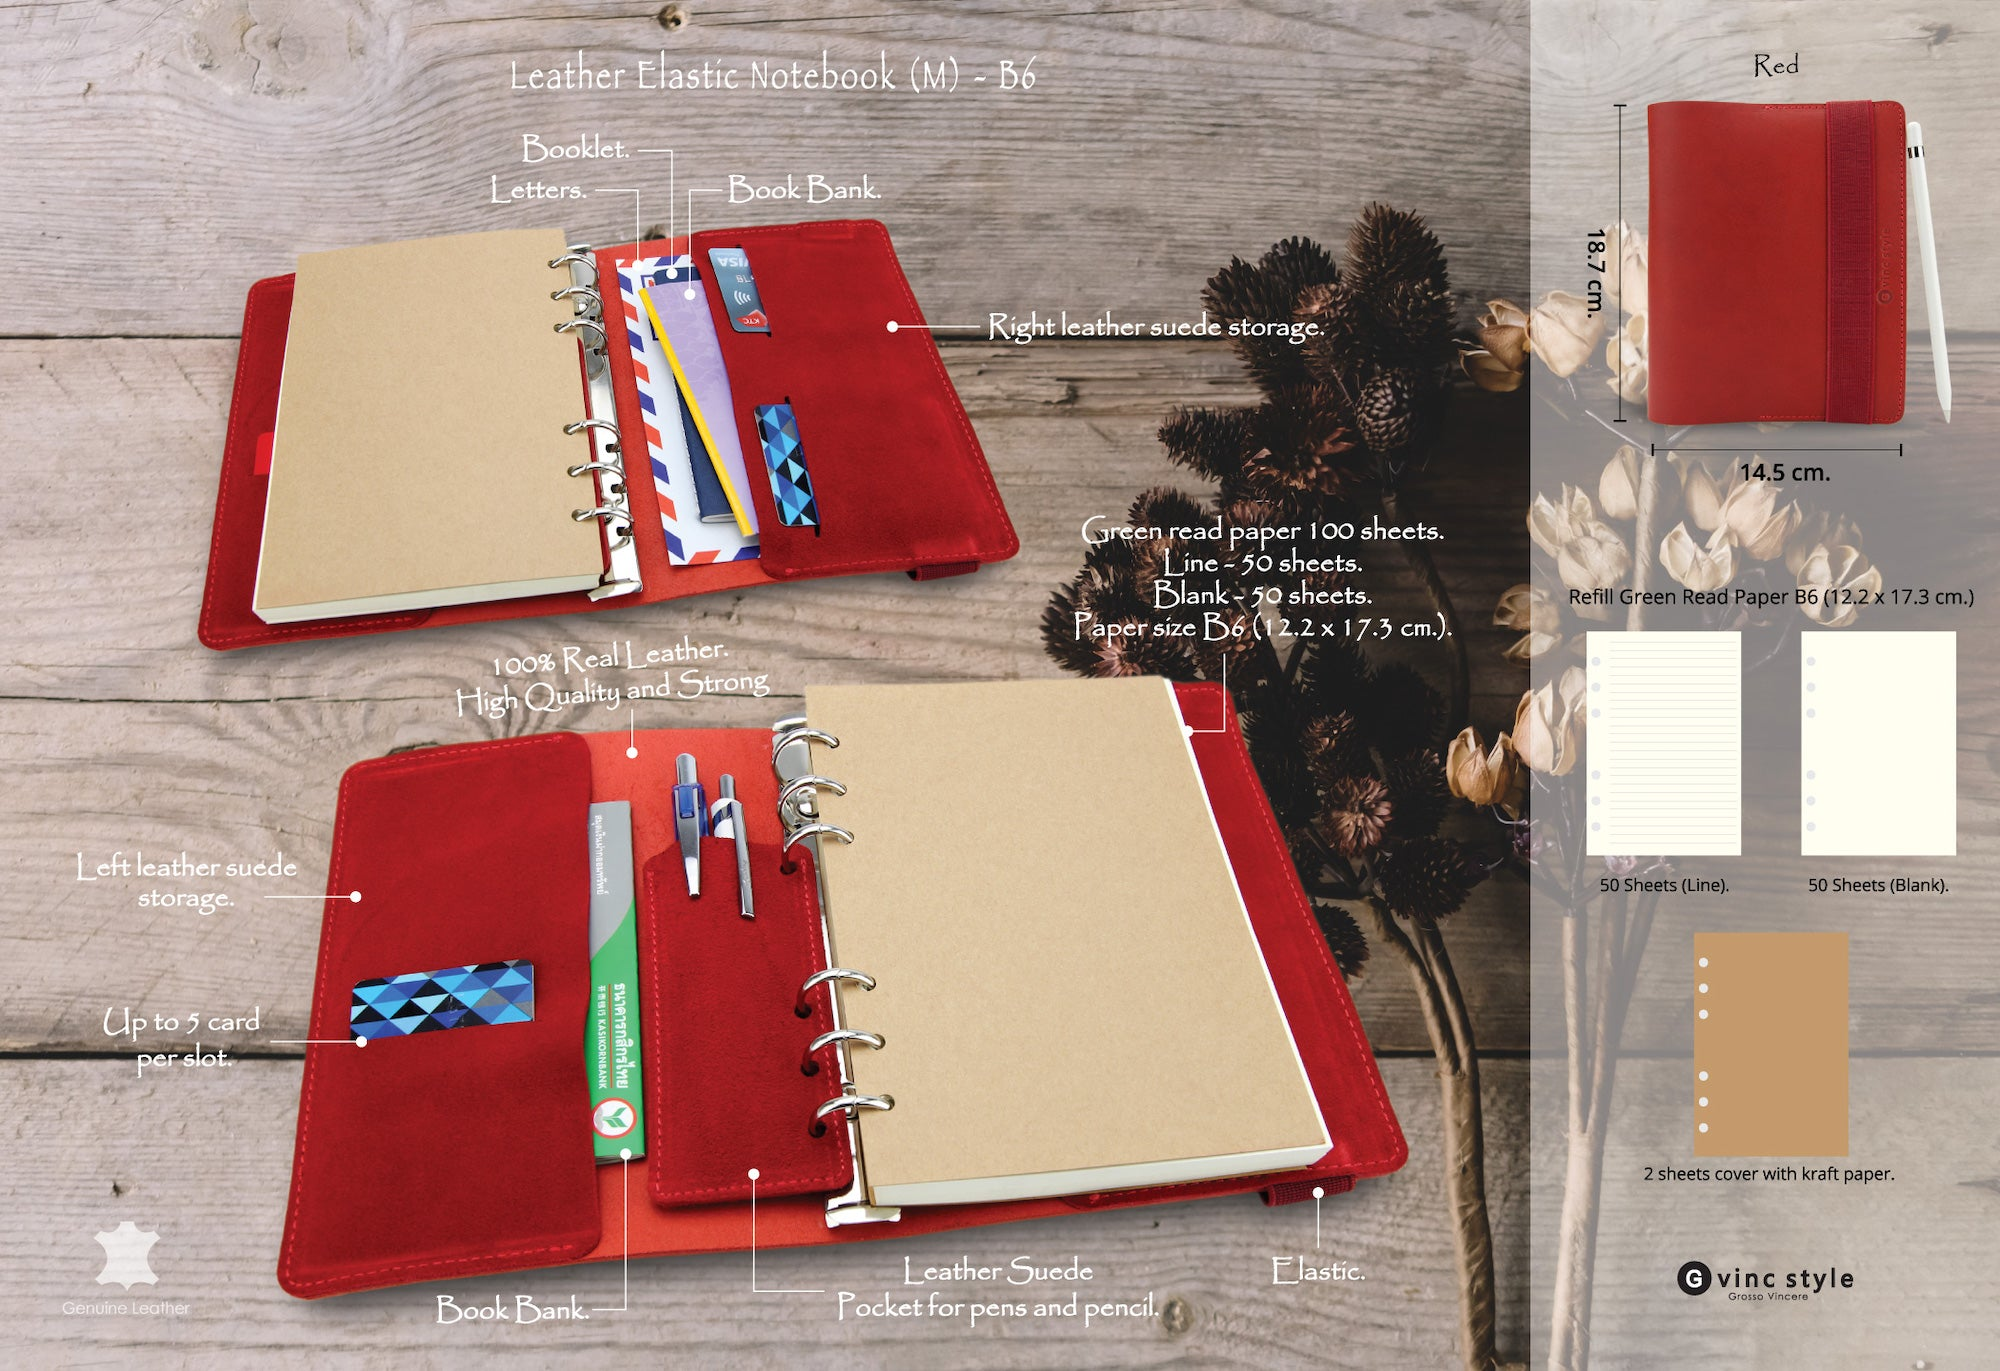 Leather Elastic Notebook (M) - Red